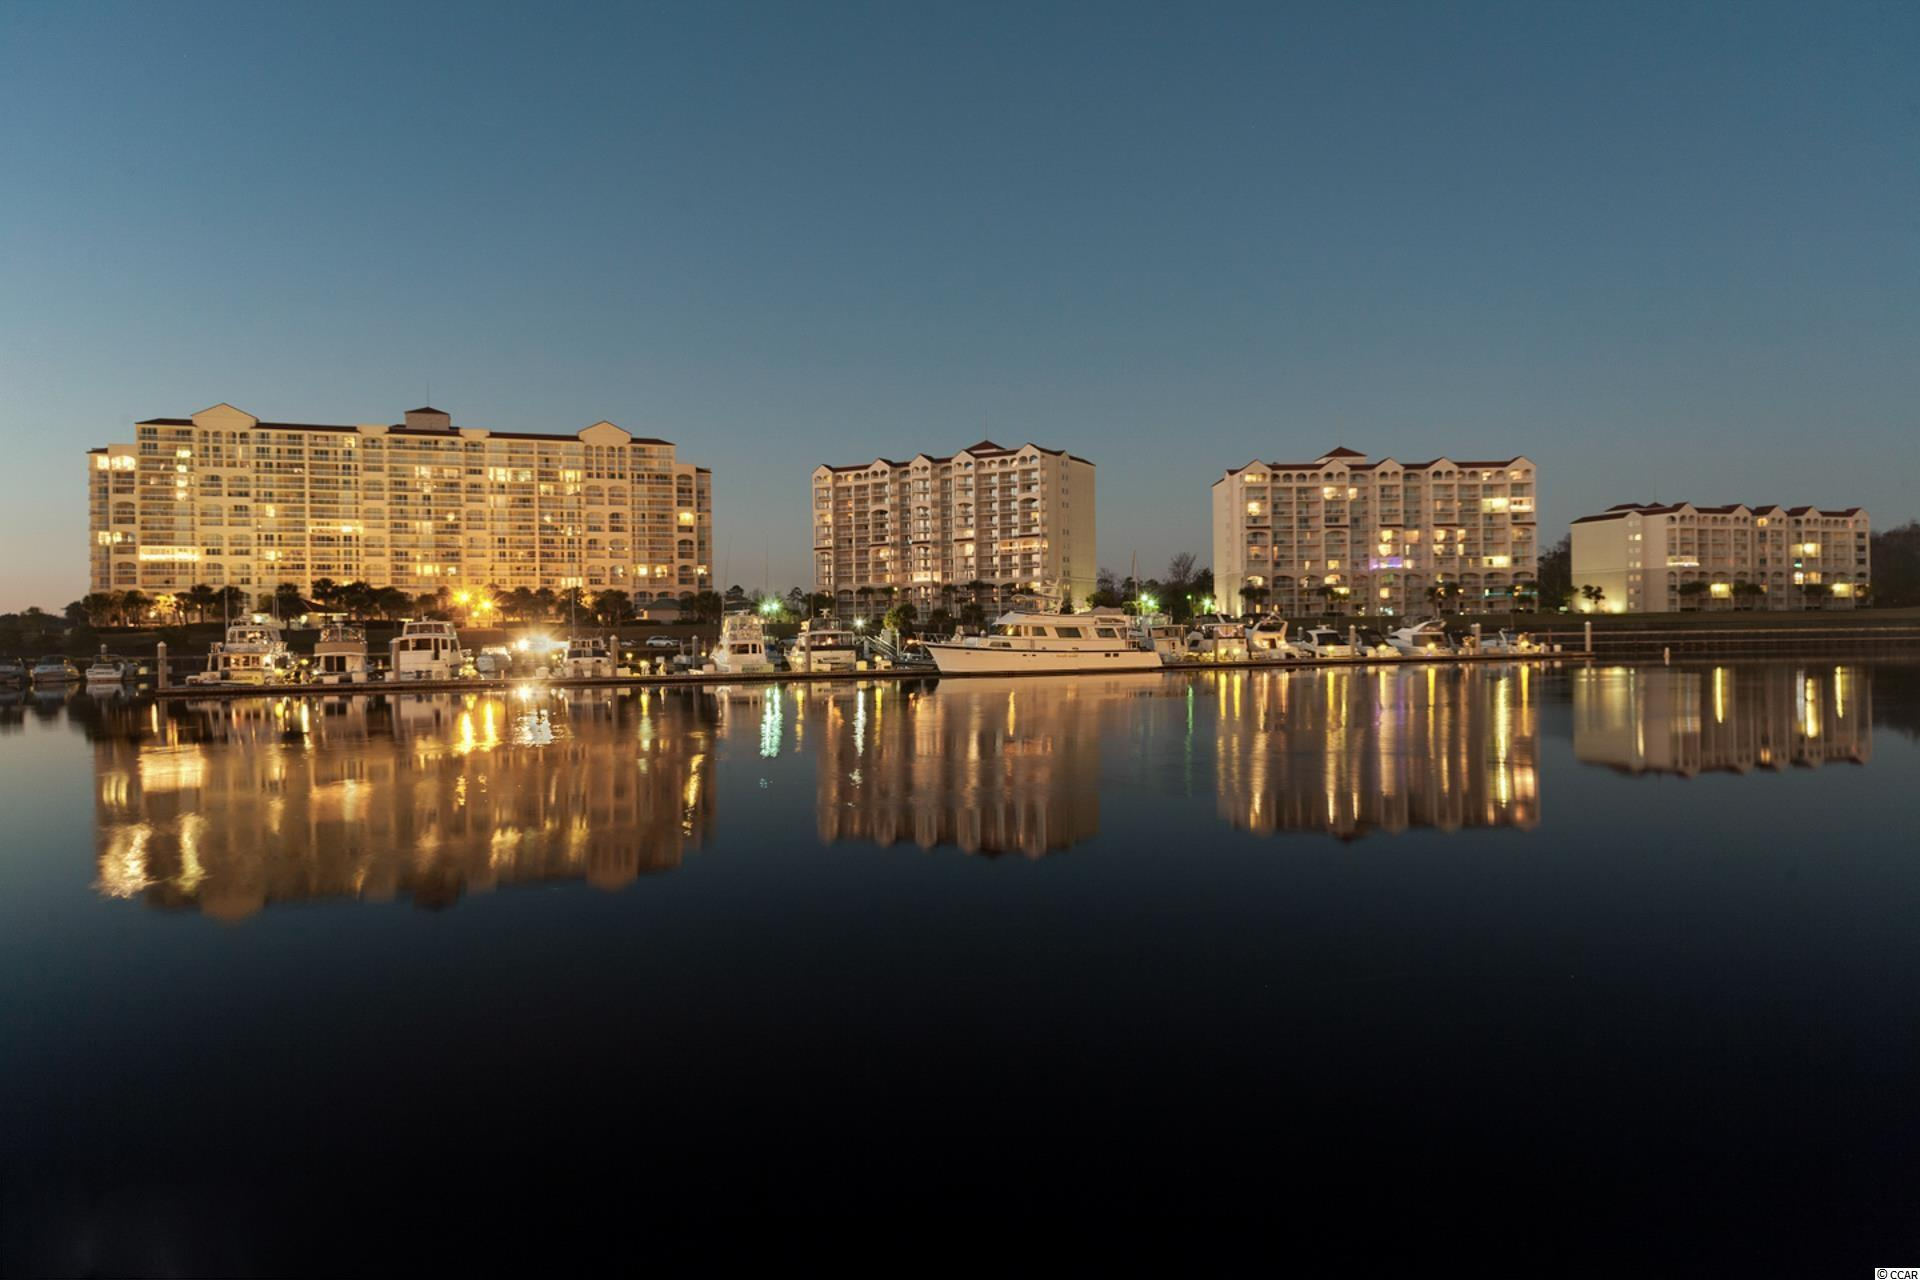 Here is a wonderful opportunity to own a furnished 4 bedroom unit on the Waterway that has spectacular views.   This unit is a lockout so that it not only can be a great investment property, but could also be a second home.   There are many upgrades, including new vinyl flooring, stainless appliances, new washer/dryer, newly painted, the entrance and around the breakfast bar is beadboard.  The 3 lockout units off of the main unit all have their own entrances so you could live in the main unit and rent out the lockout units for an income producing property.  There are 3 balconies for spectacular views of the Intracoastal, the Barefoot Marina and Barefoot Landing.   The kitchen overlooks the dining area and living room and has a view right out to the waterway, with a rounded breakfast bar that is great for entertaining. The refrigerator, dishwasher and microwave are all stainless. Barefoot Resort is a wonderful development with close proximity to the AtlanticOcean, and Barefoot Landing for shops, restaurants and other activities. Come and enjoy the Barefoot Lifestyle, you'll be glad you did.